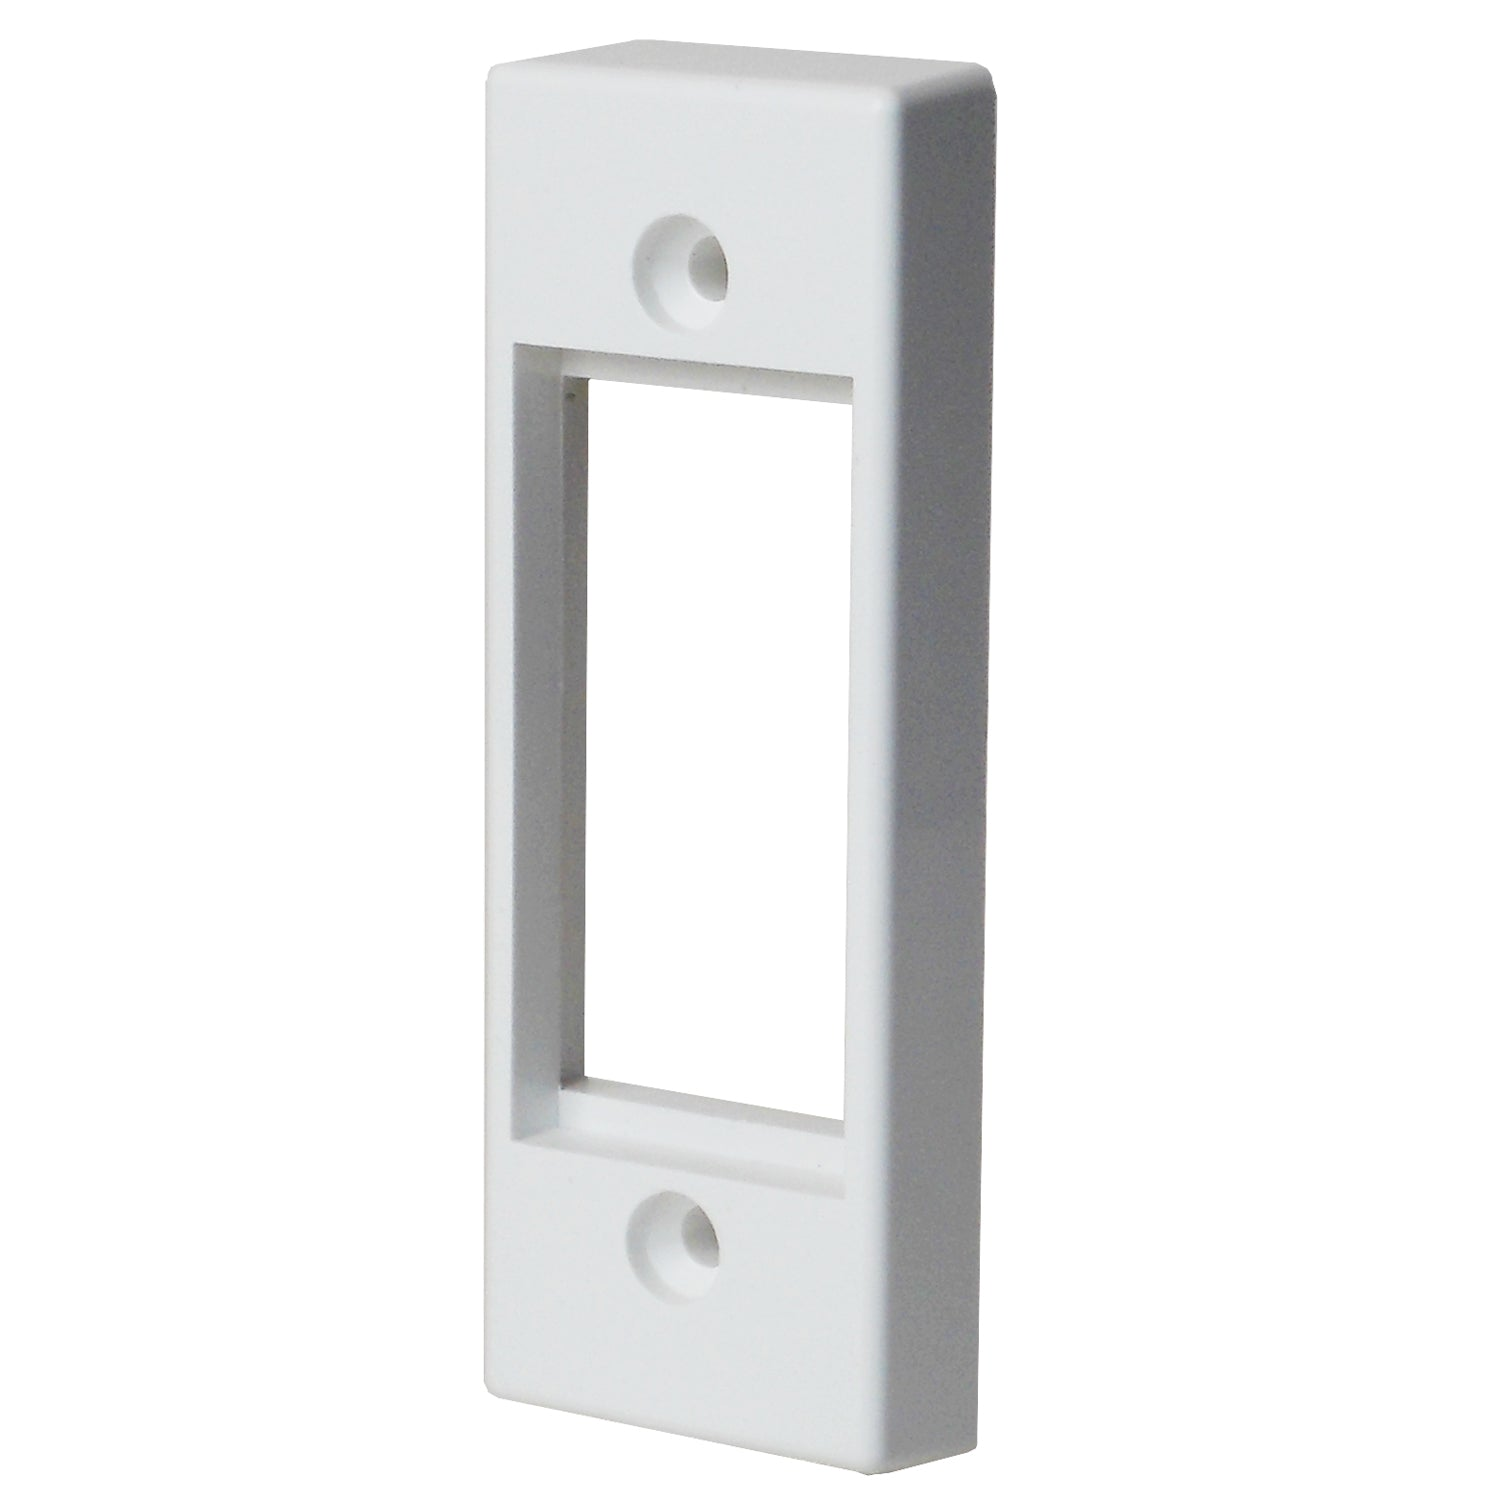 architrave faceplate for modules in white